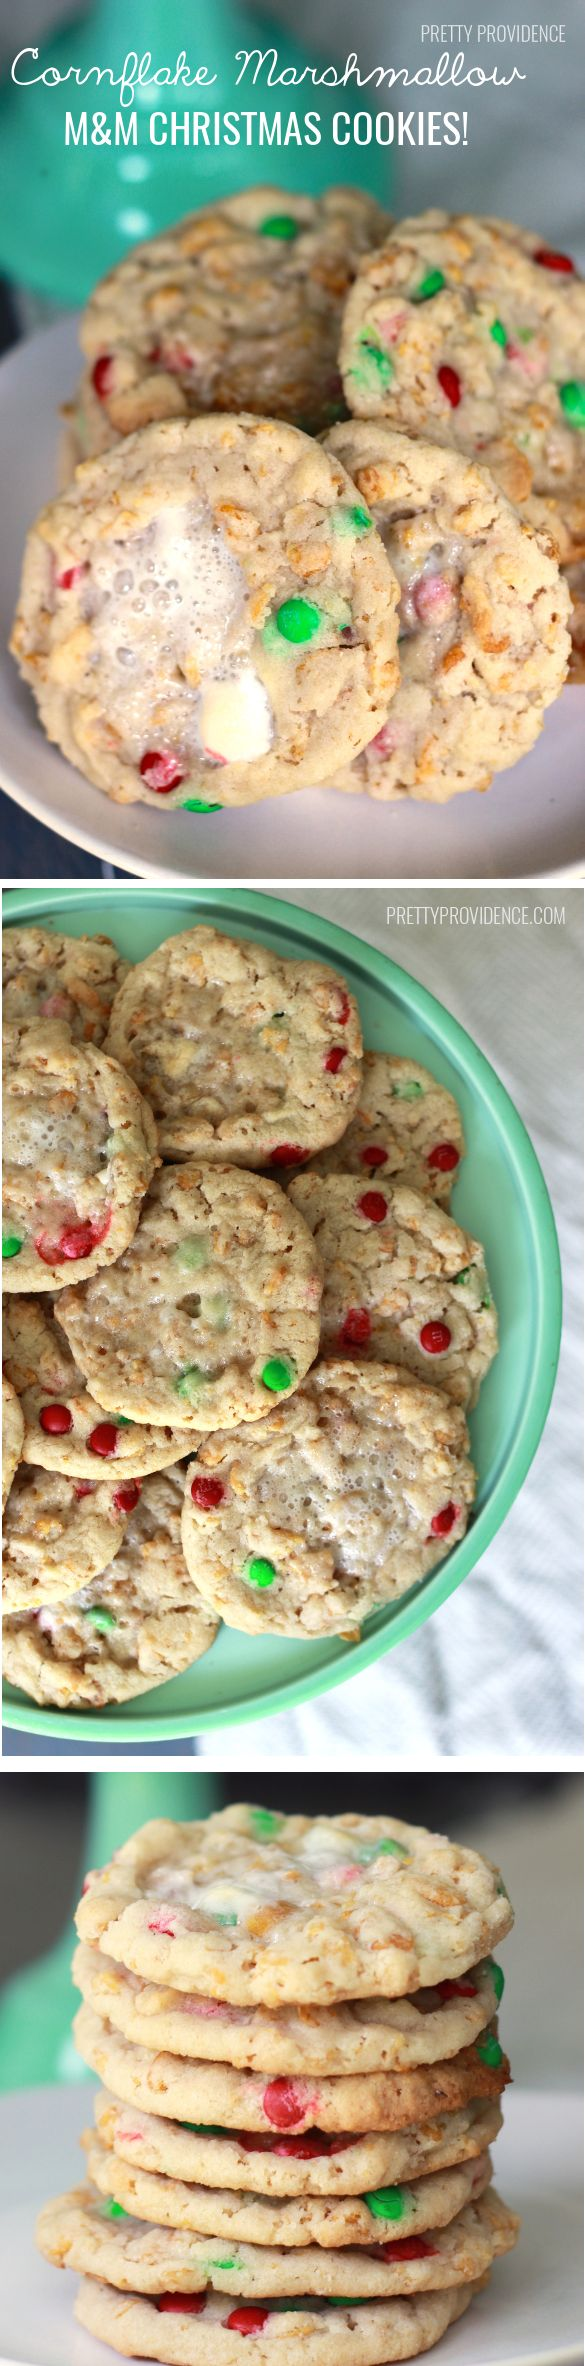 Cornflake Marshmallow M&M Christmas Cookies from MichaelsMakers Pretty Providence